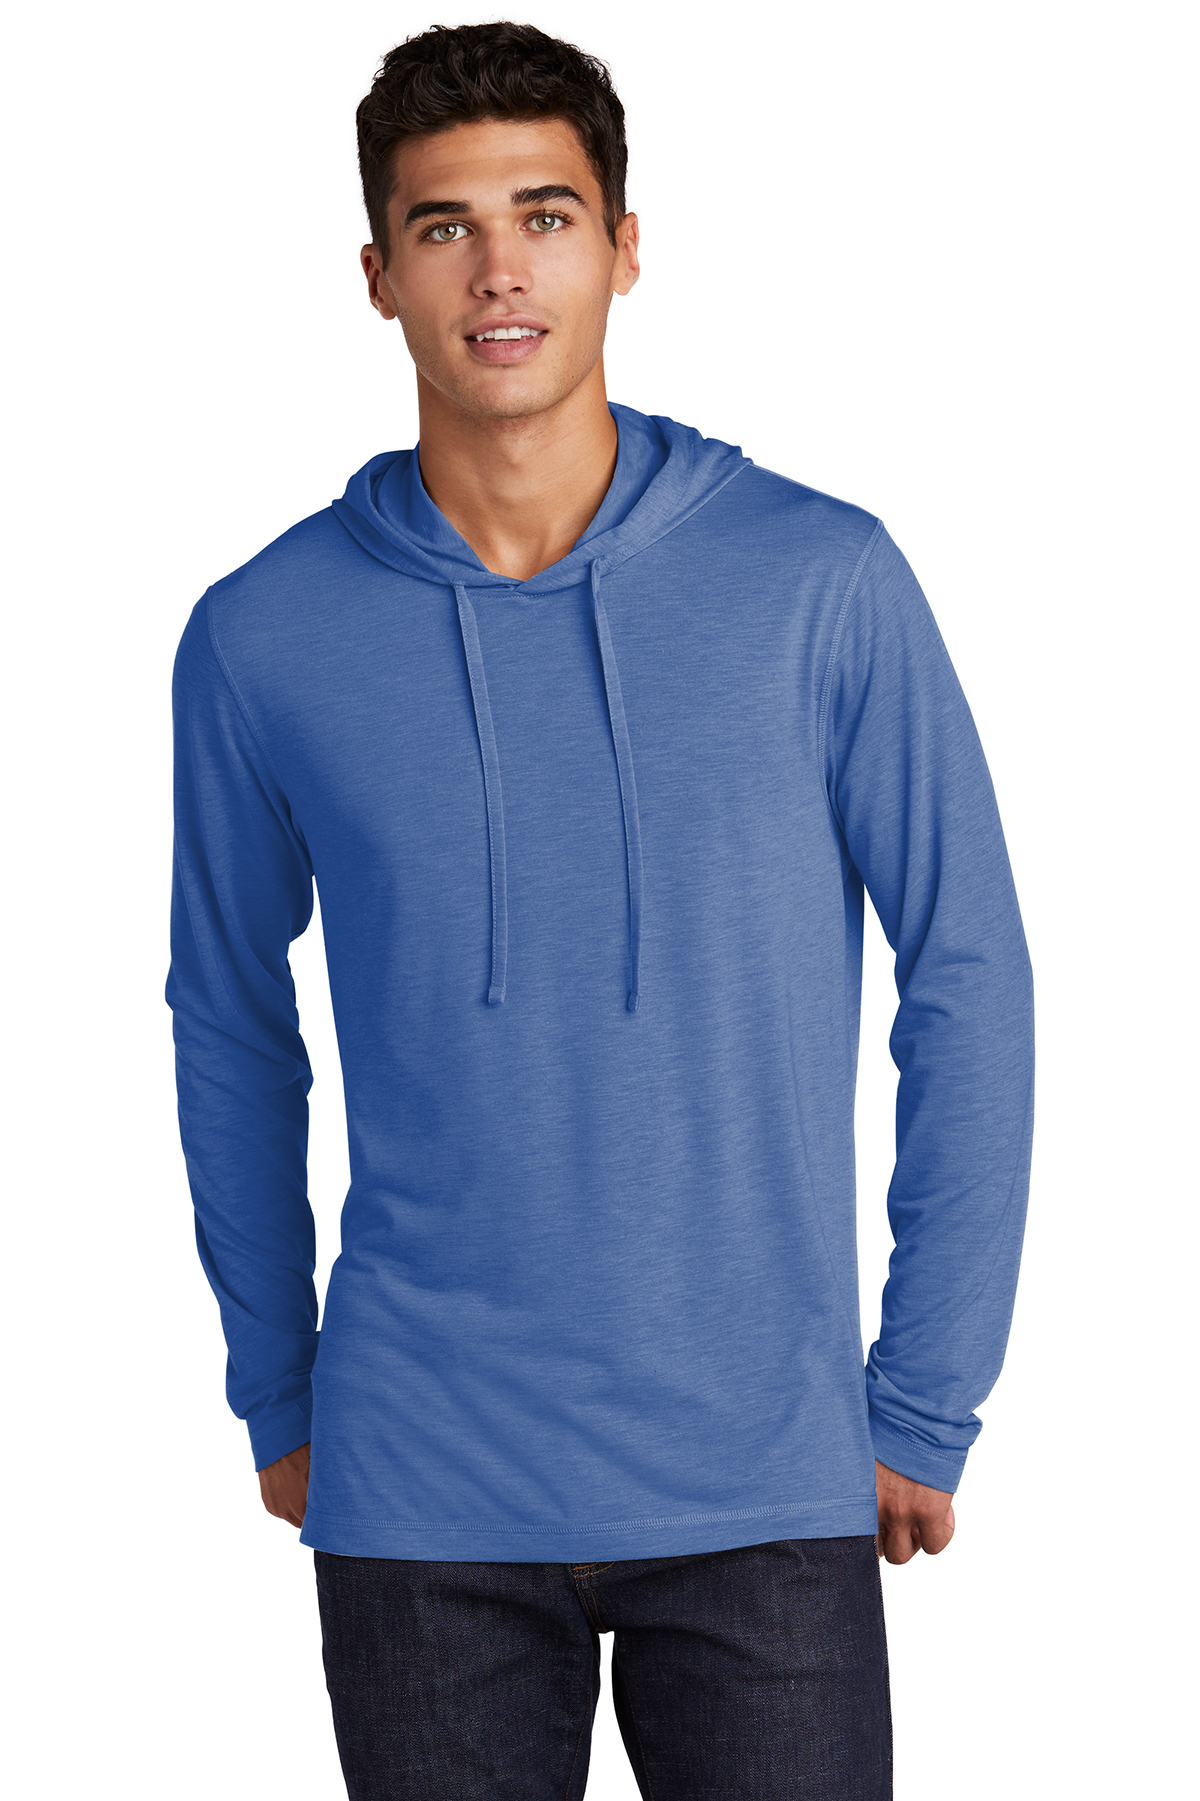 Sport Tek Posicharge Tri Blend Wicking Long Sleeve Hoodie Long Sleeve T Shirts Sport Tek Hoodies & sweatshirts └ activewear └ men's clothing └ men └ clothing, shoes & accessories все категории antiques art baby books business & industrial cameras & photo cell phones & accessories clothing, shoes & accessories coins bape (ss19) full zip hoodie. sport tek posicharge tri blend wicking long sleeve hoodie long sleeve t shirts sport tek